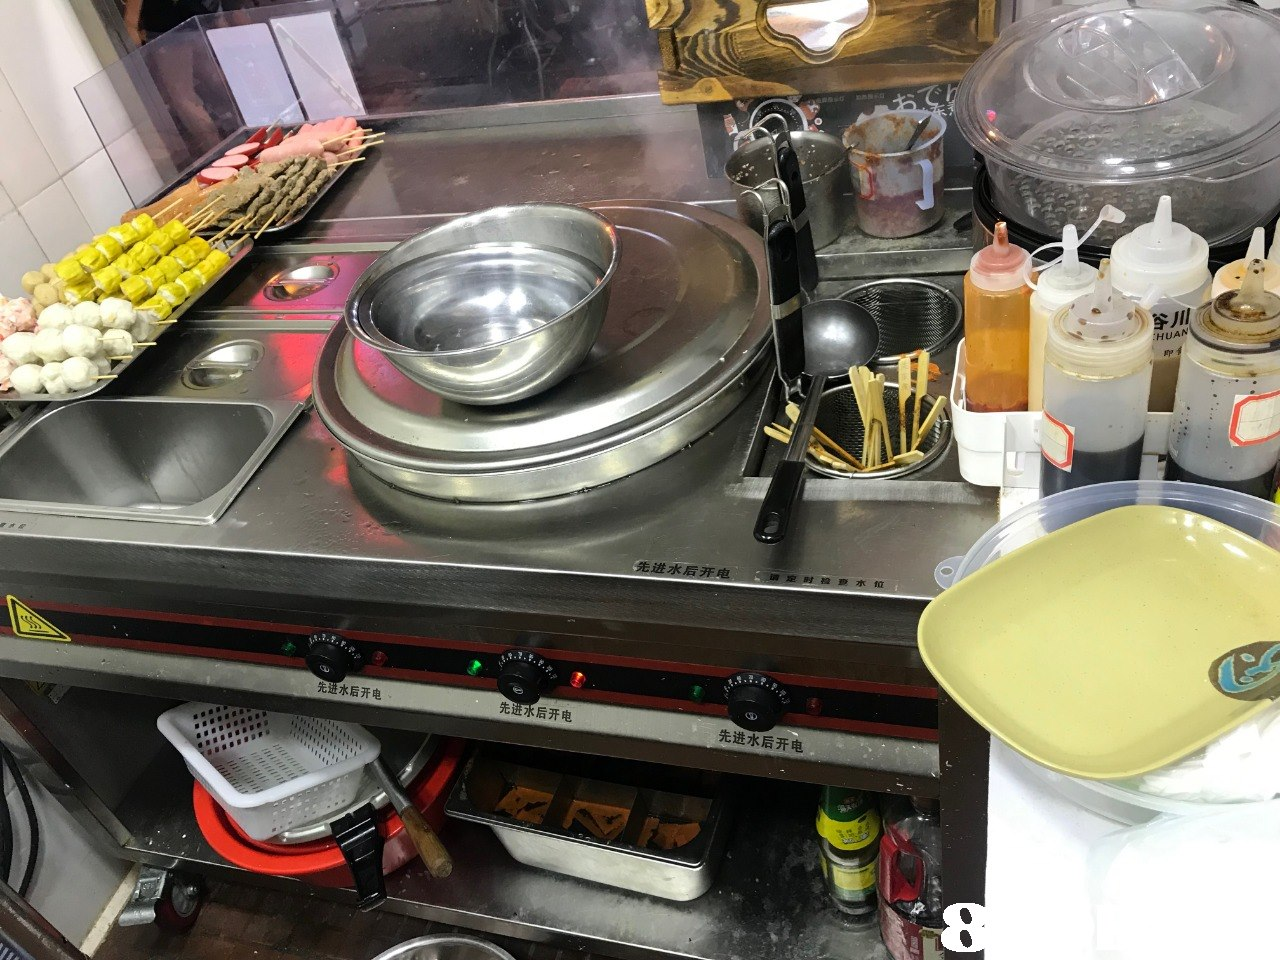 HUAN 先进水后开电 先进水后开电  cookware and bakeware,food,